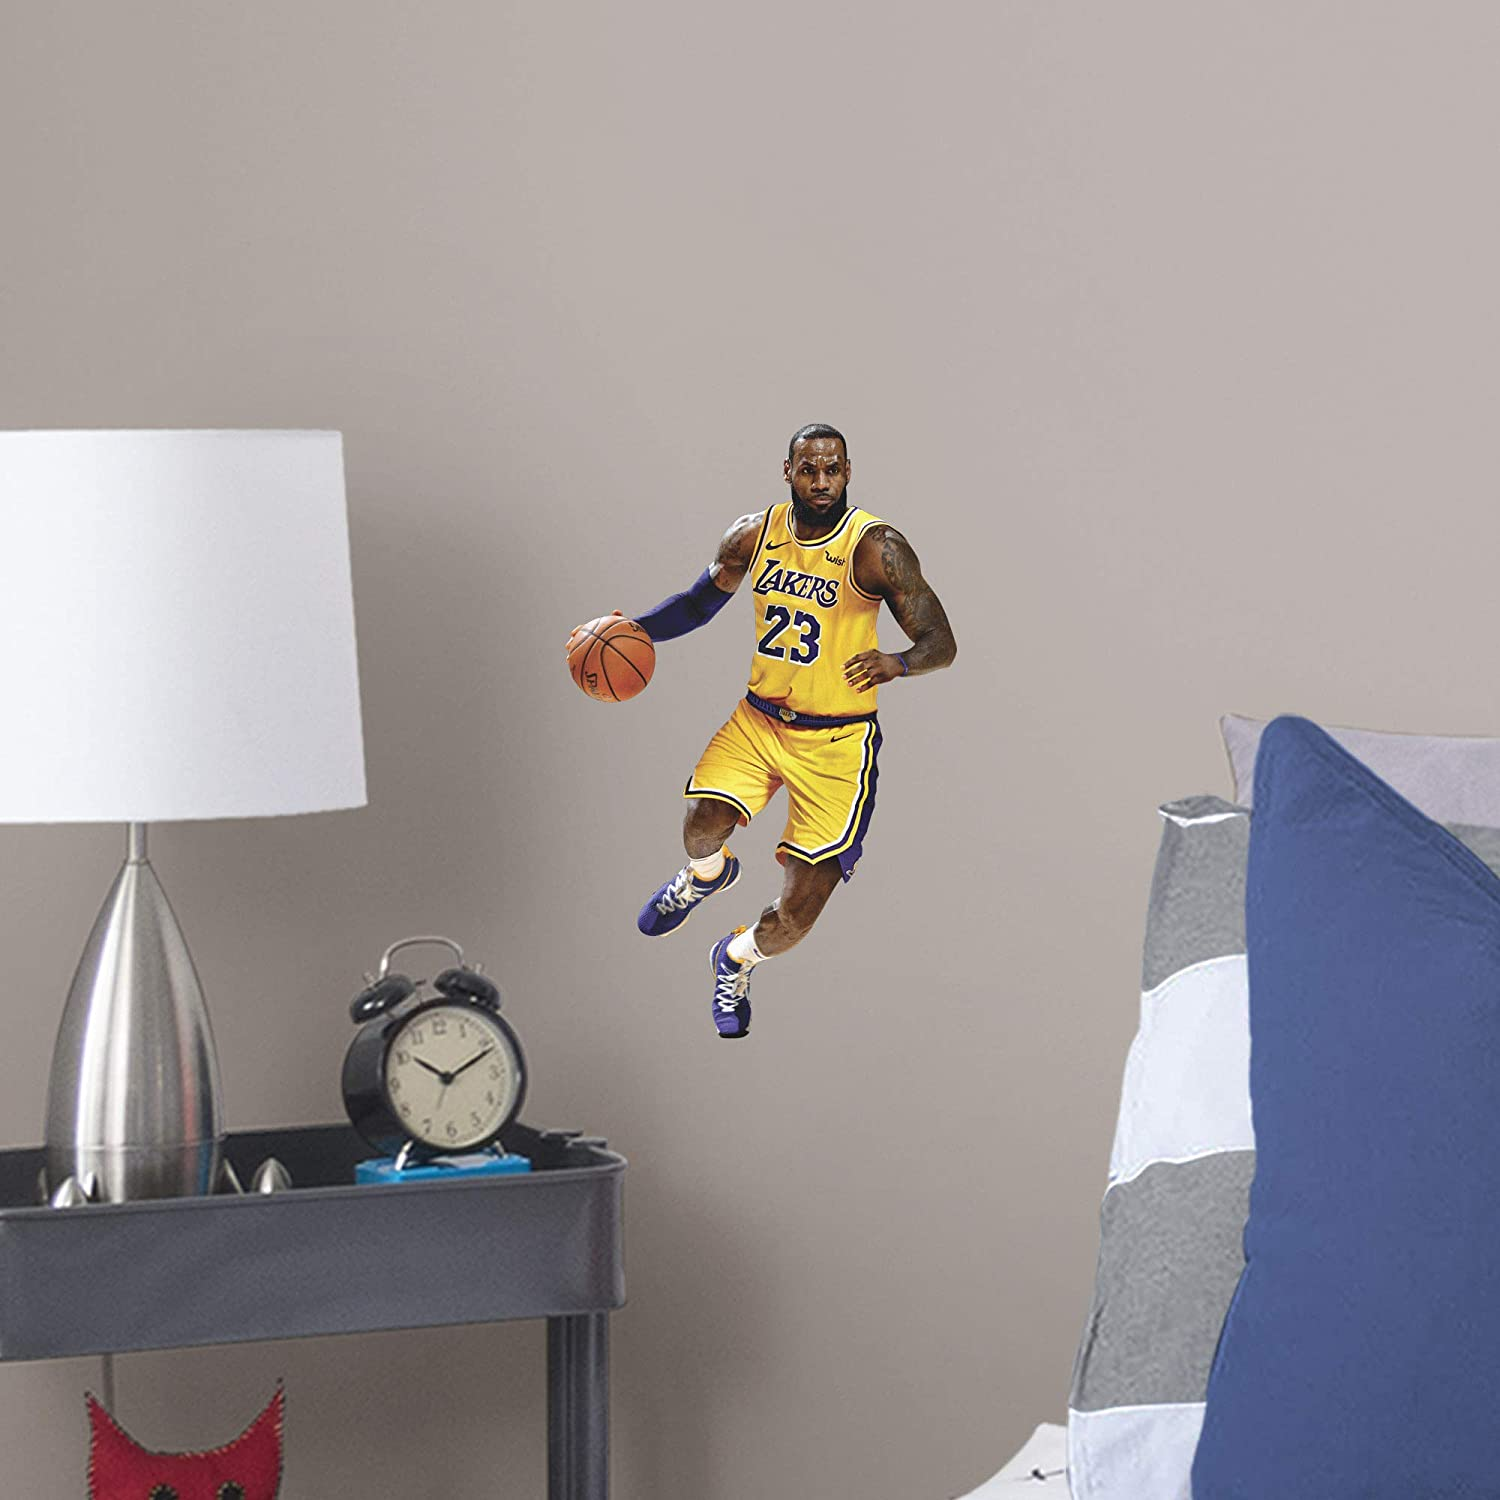 FATHEAD NBA Los Angeles Lakers Lebron James Lebron James- Officially Licensed Removable Wall Decal